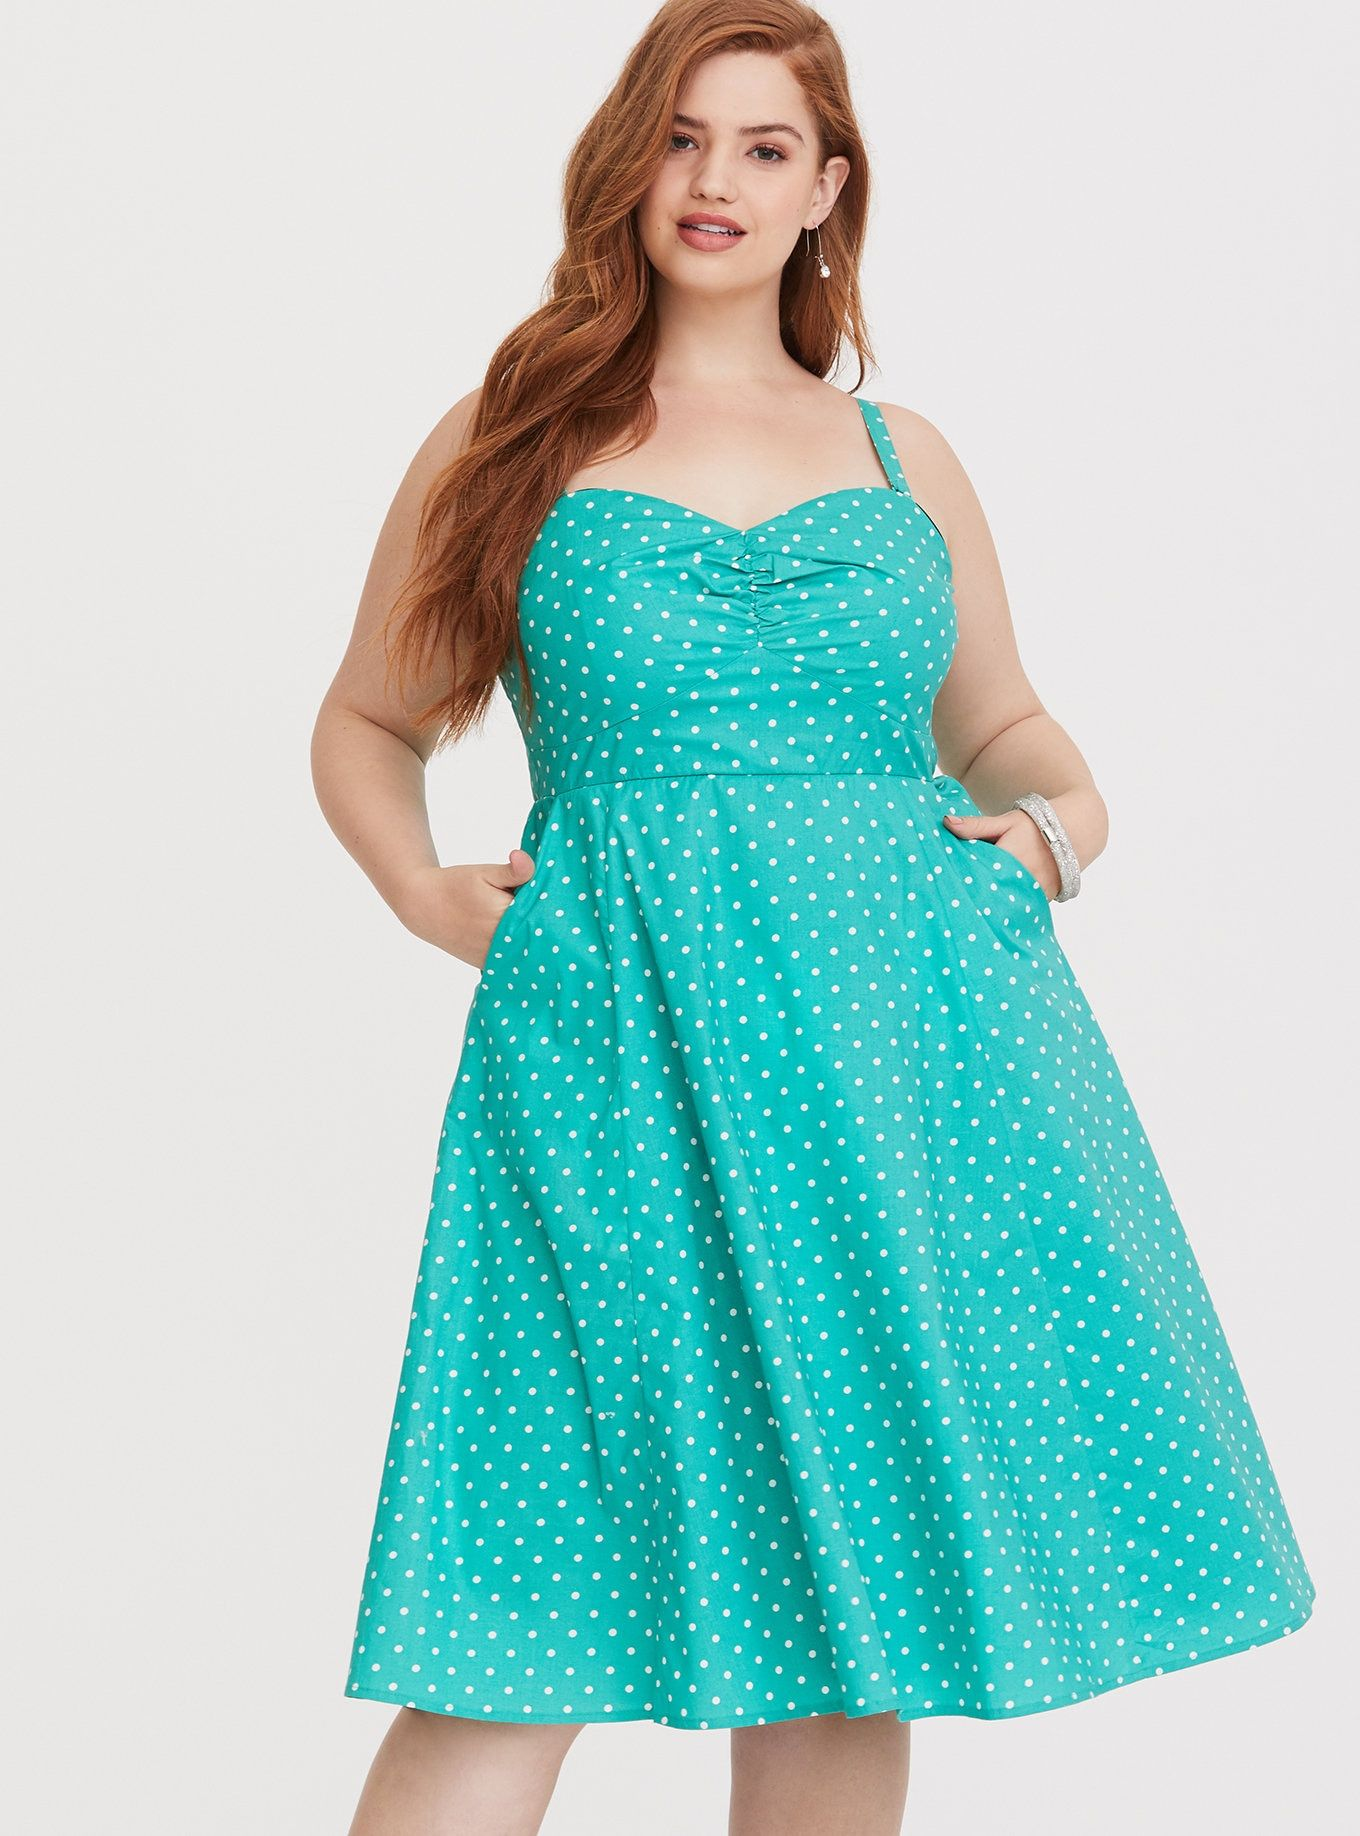 Retro Chic Mint Dotted Skater Dress | Wants | Dresses, Retro ...